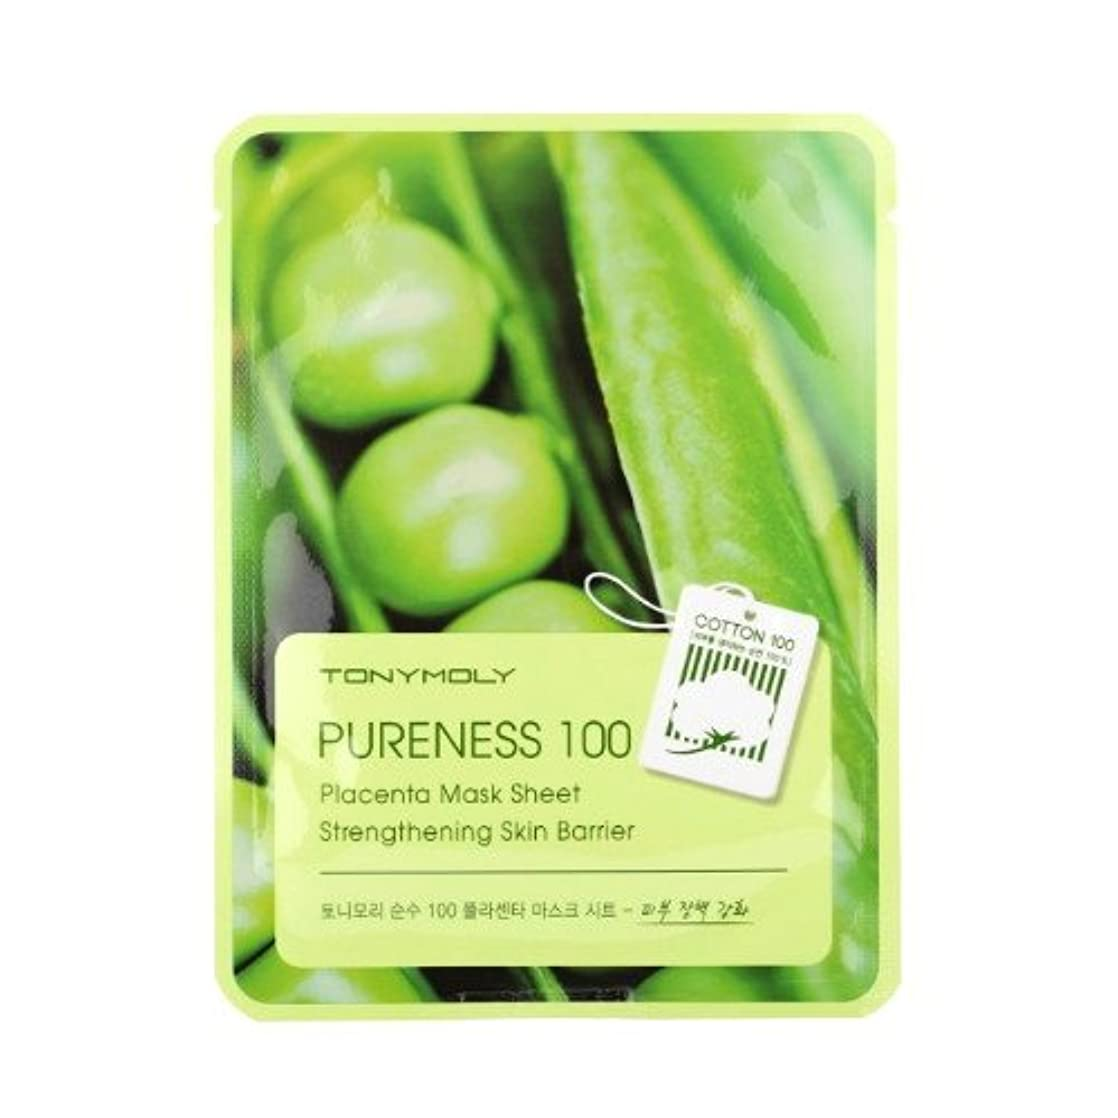 疑い者農民学習者(6 Pack) TONYMOLY Pureness 100 Placenta Mask Sheet Strengthening Skin Barrier (並行輸入品)